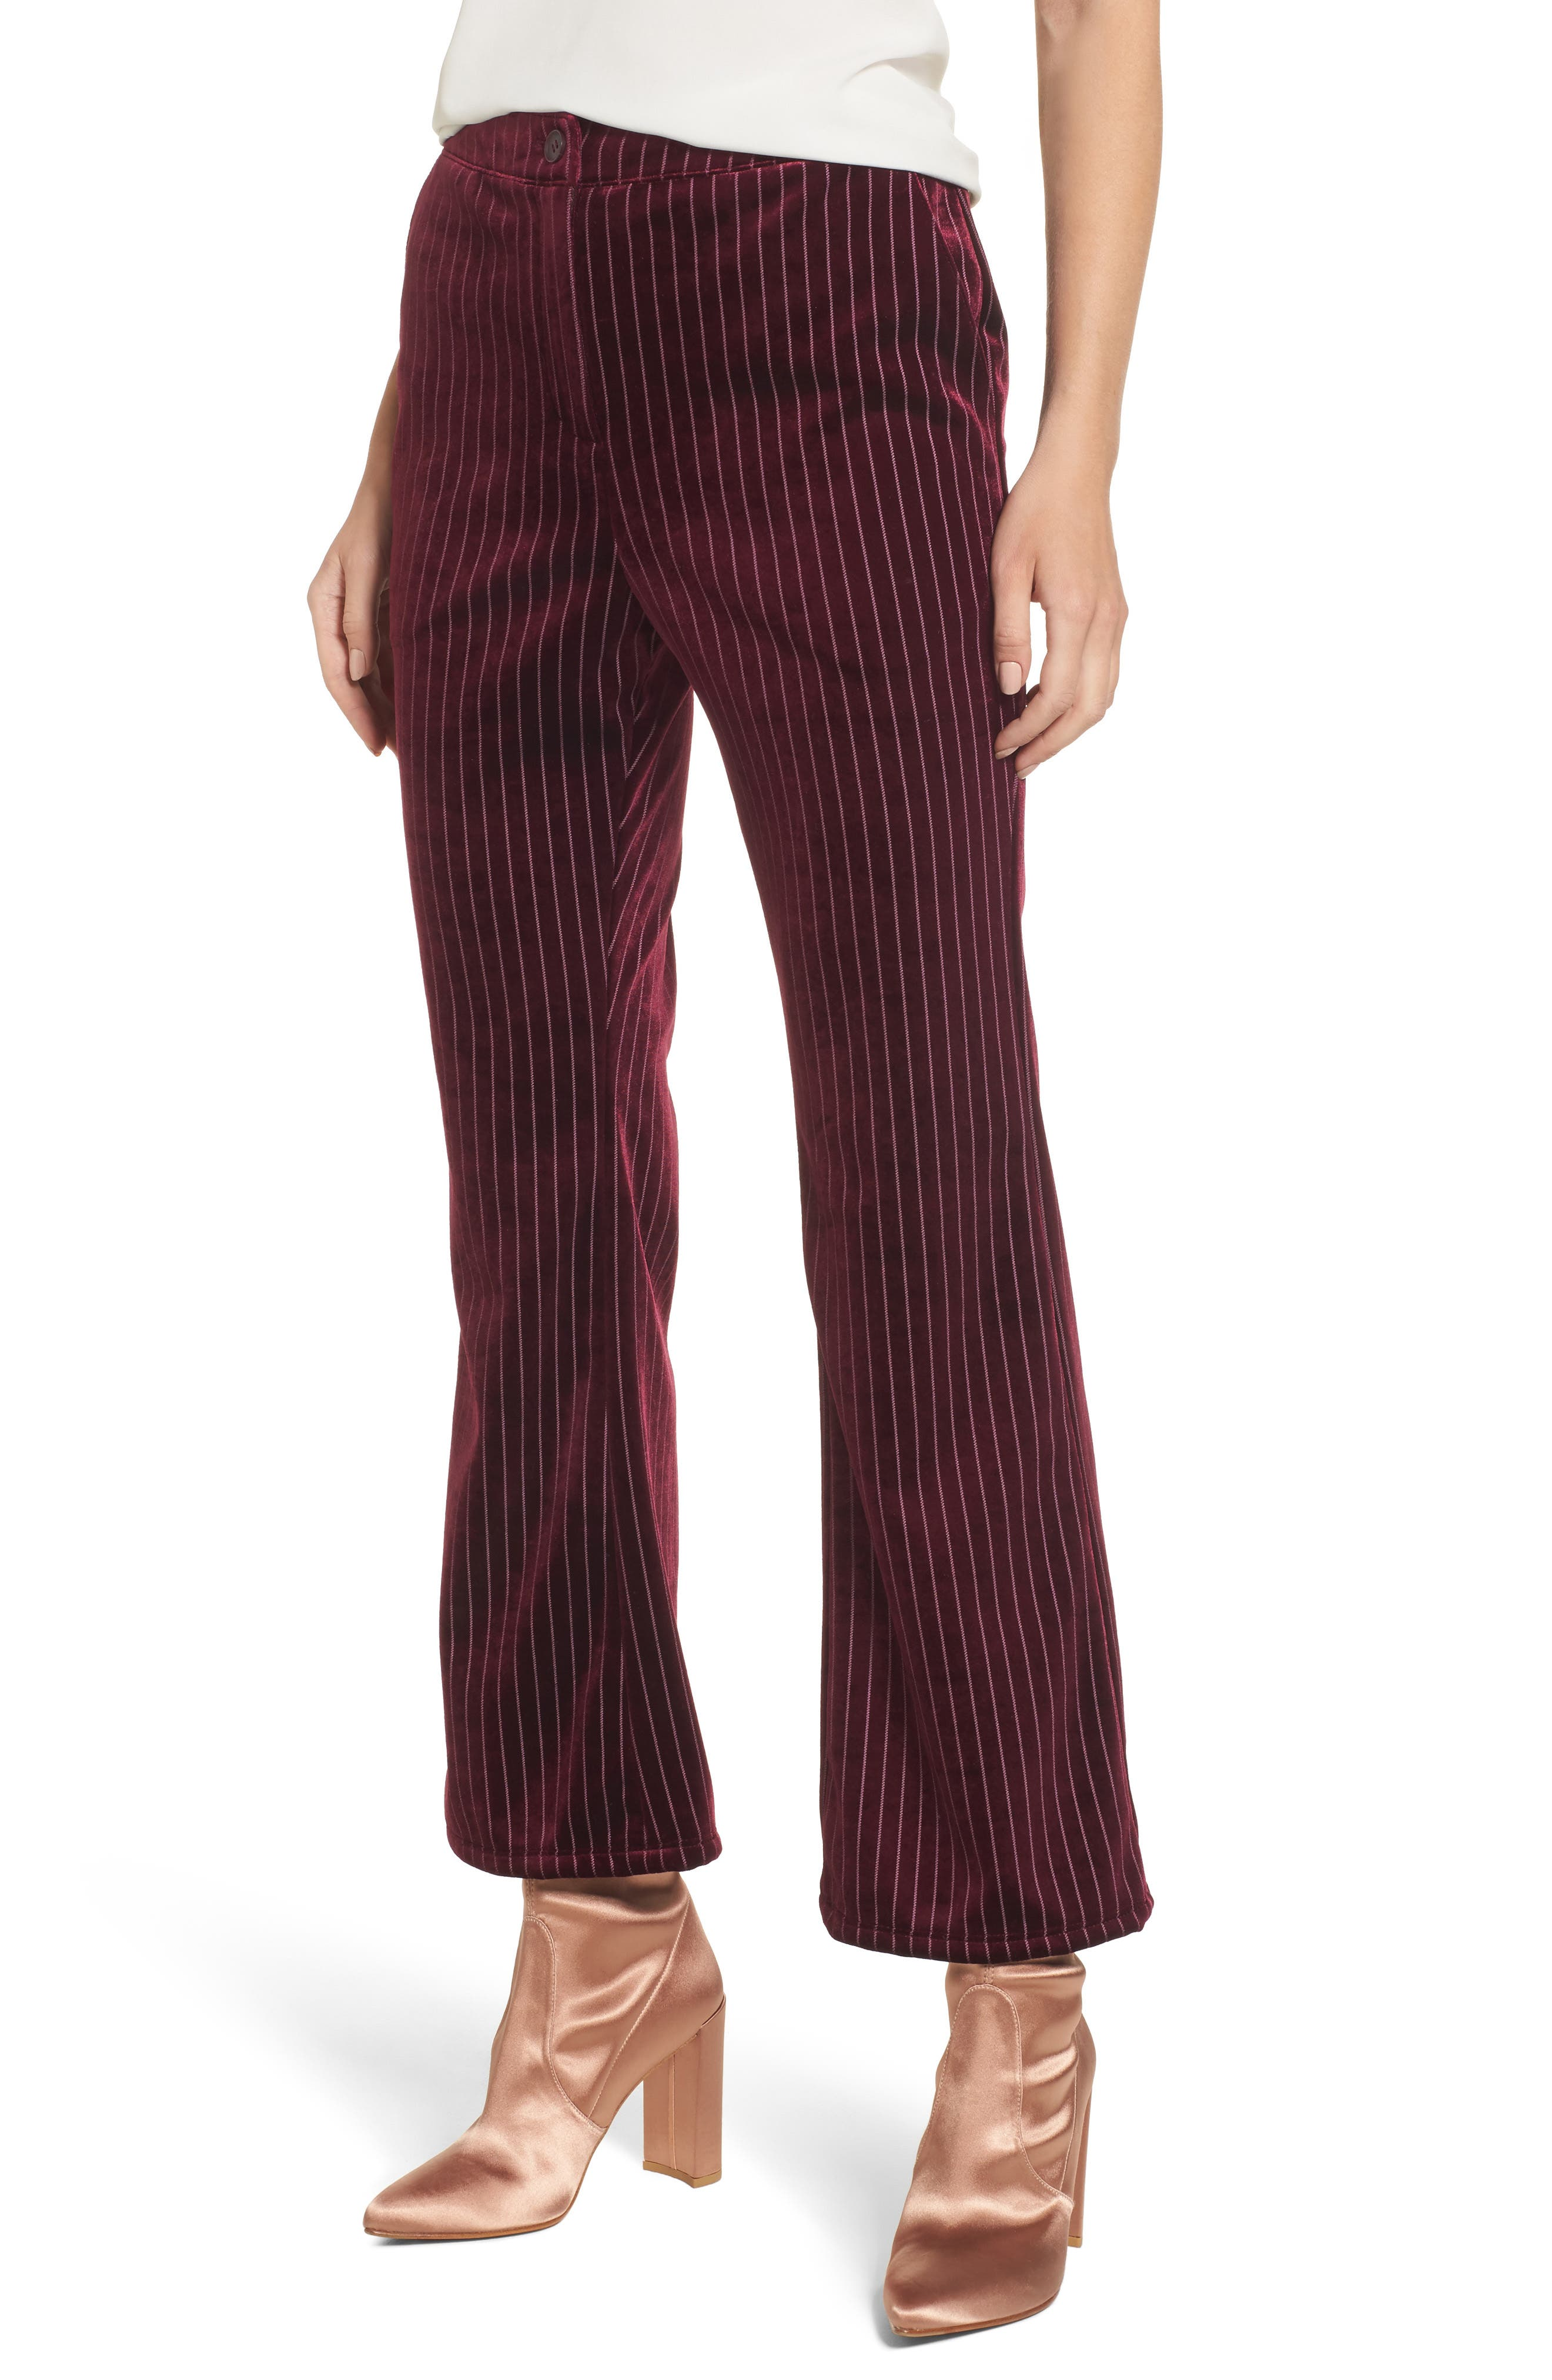 Velour Ankle Trousers,                         Main,                         color, Red Tannin Dotted Stripe